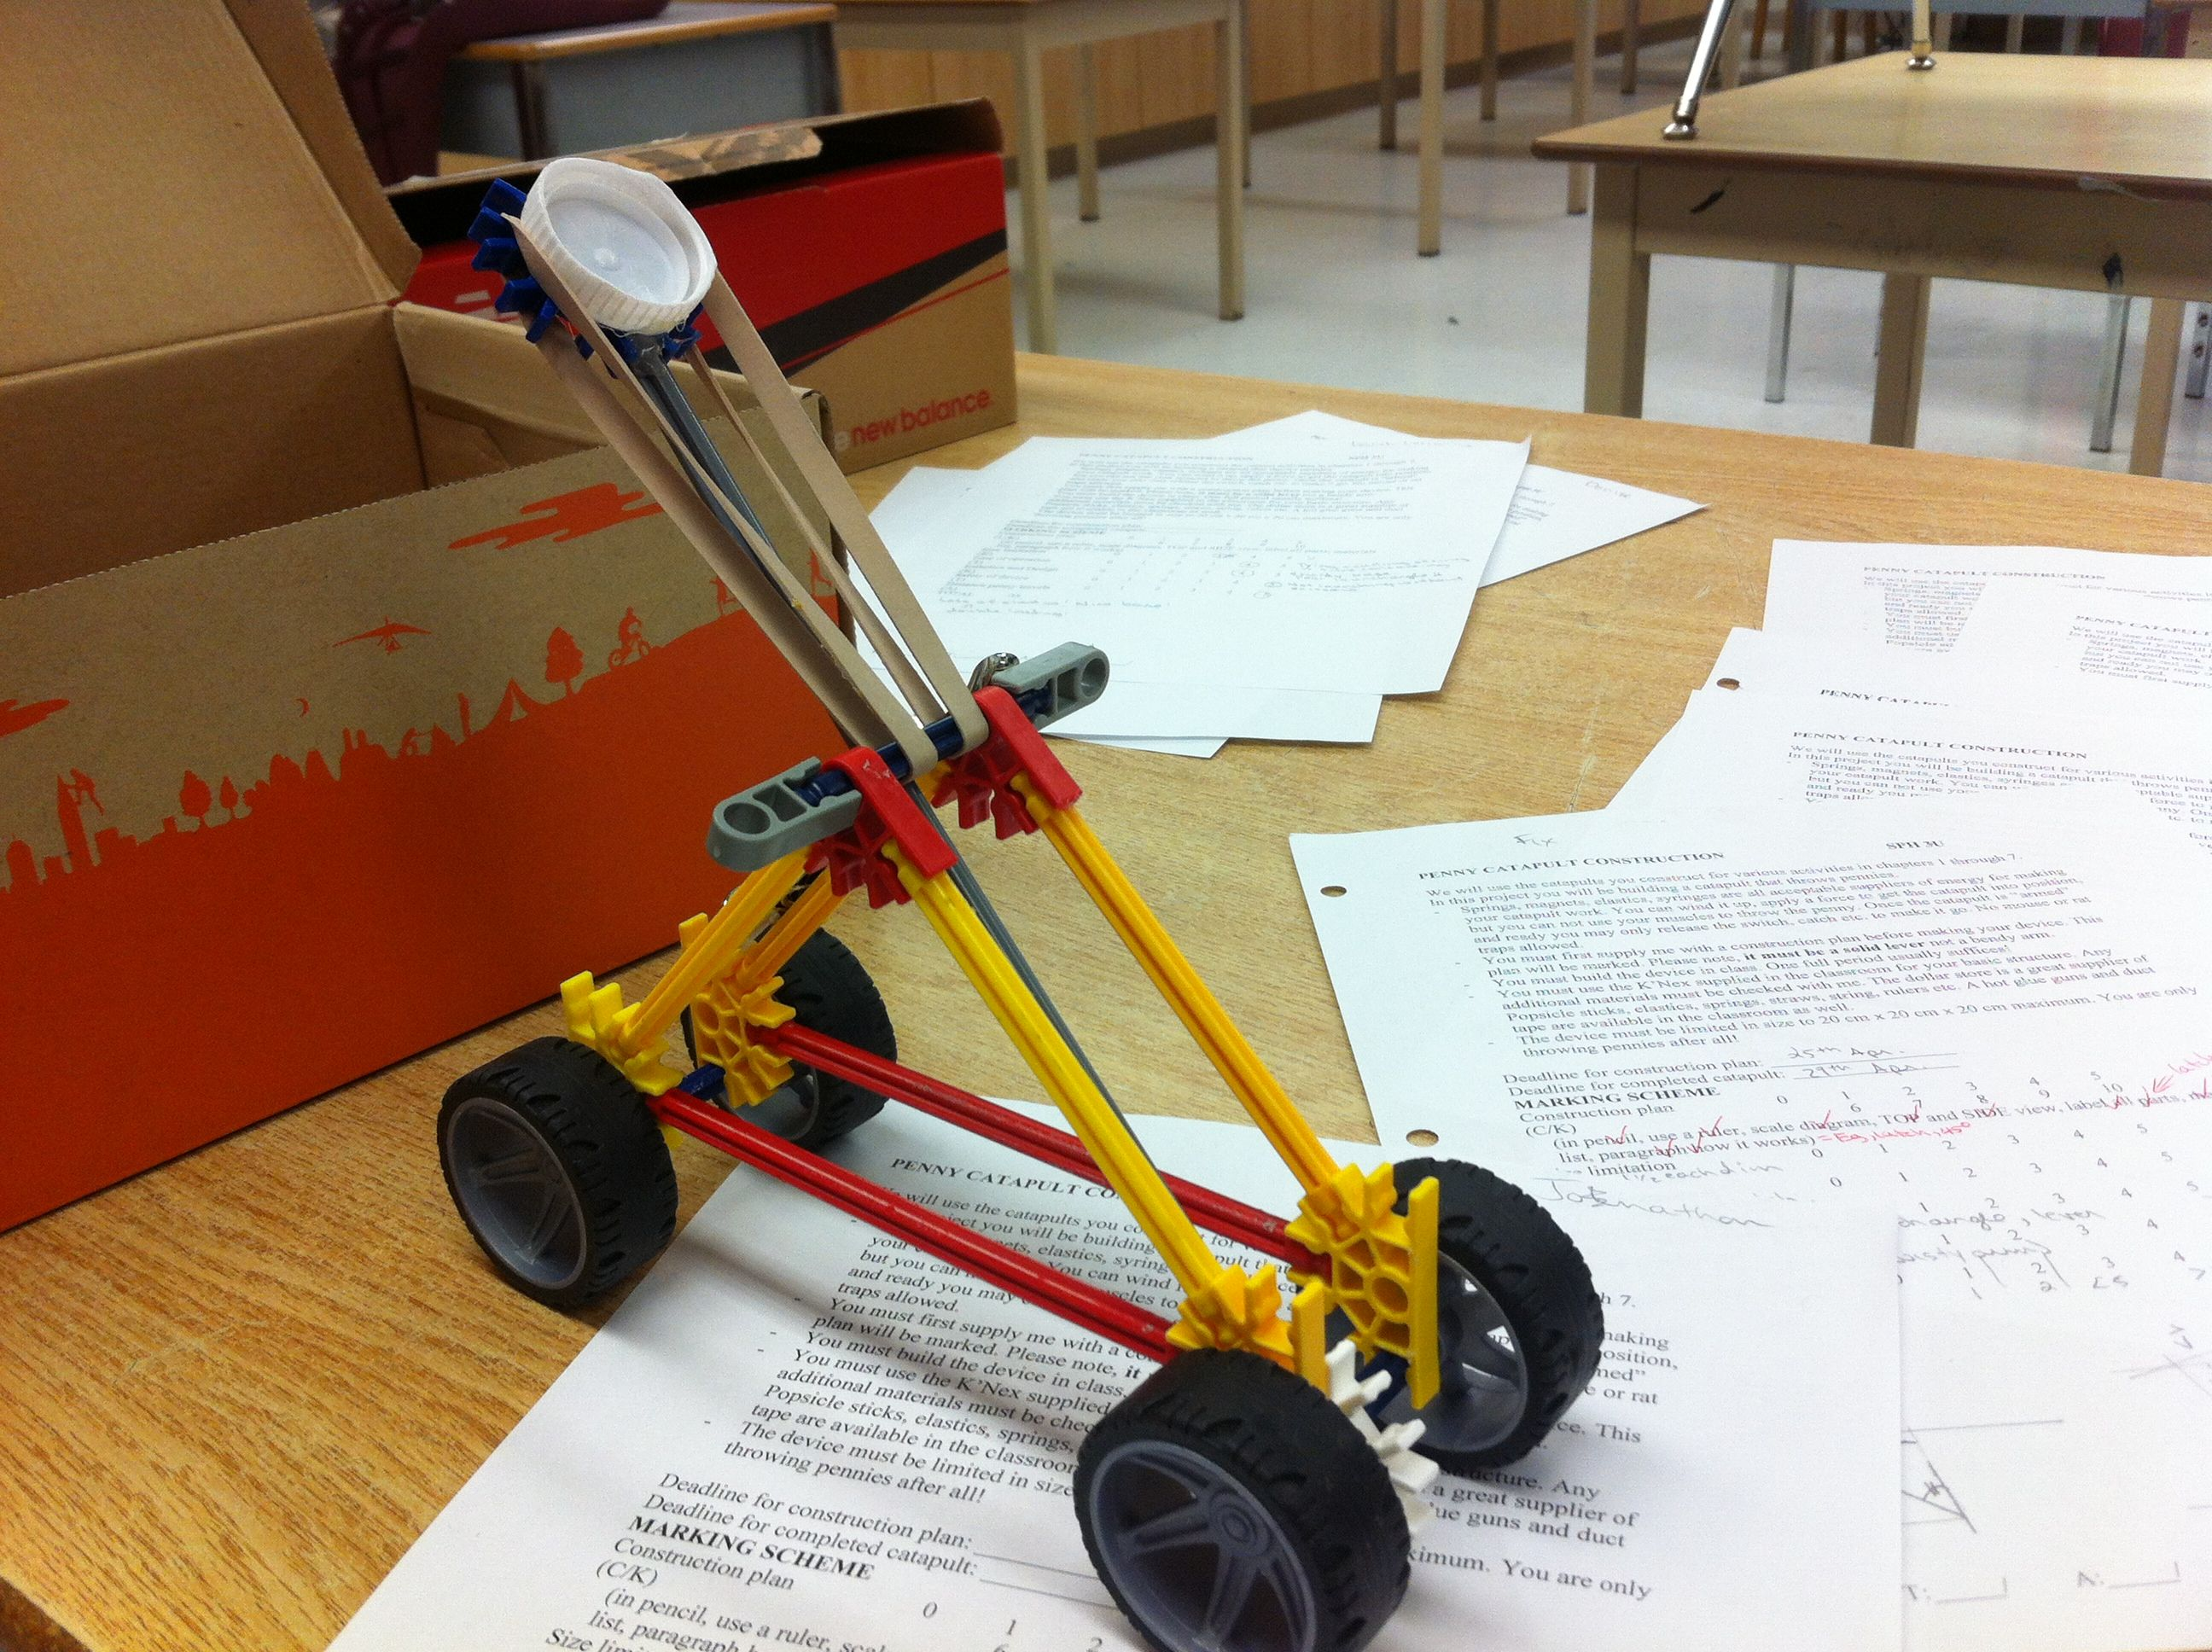 Energy and motion connections in a k nex catapult articles oapt newsletter for Catapult design plans for physics